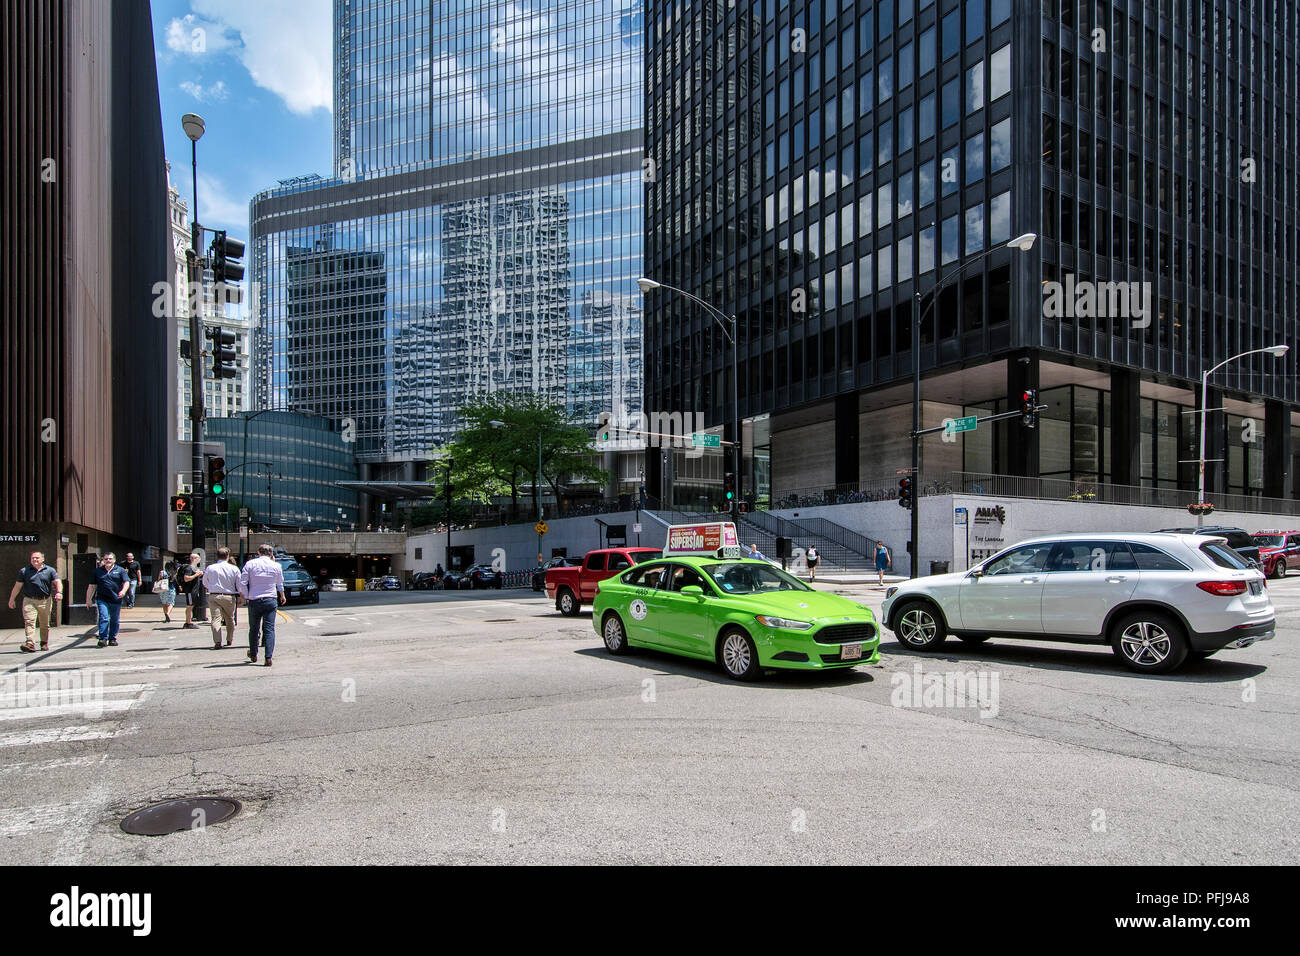 Downtown Chicago skyscrapers, Kinzie at North State Street, The Langham, Trump Tower. - Stock Image